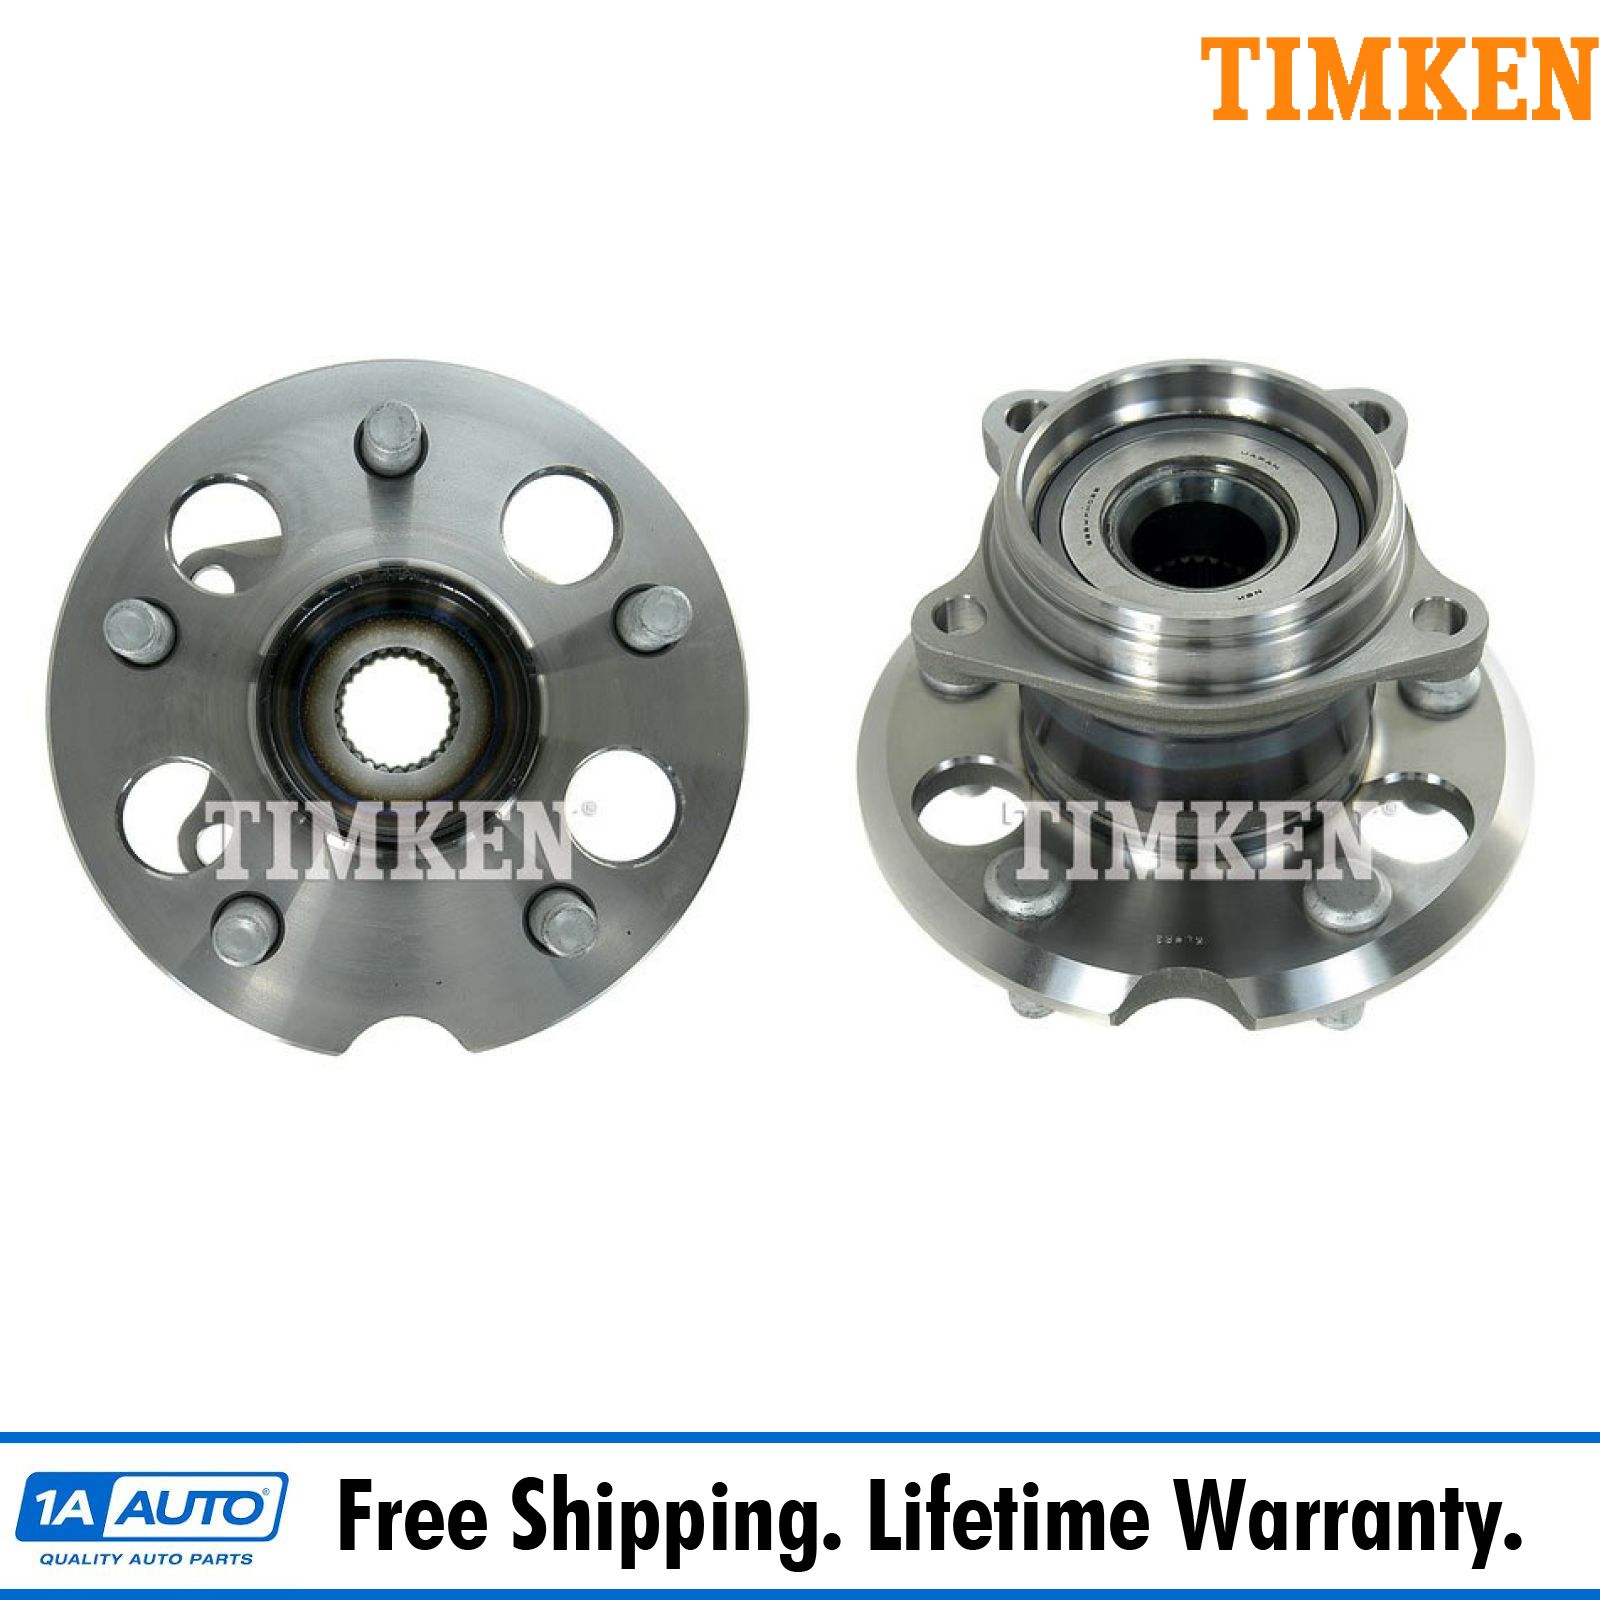 Pair of 2 Wheel Hub and Bearing Assembly Rear for 2001-2005 Toyota RAV4 4WD AWD